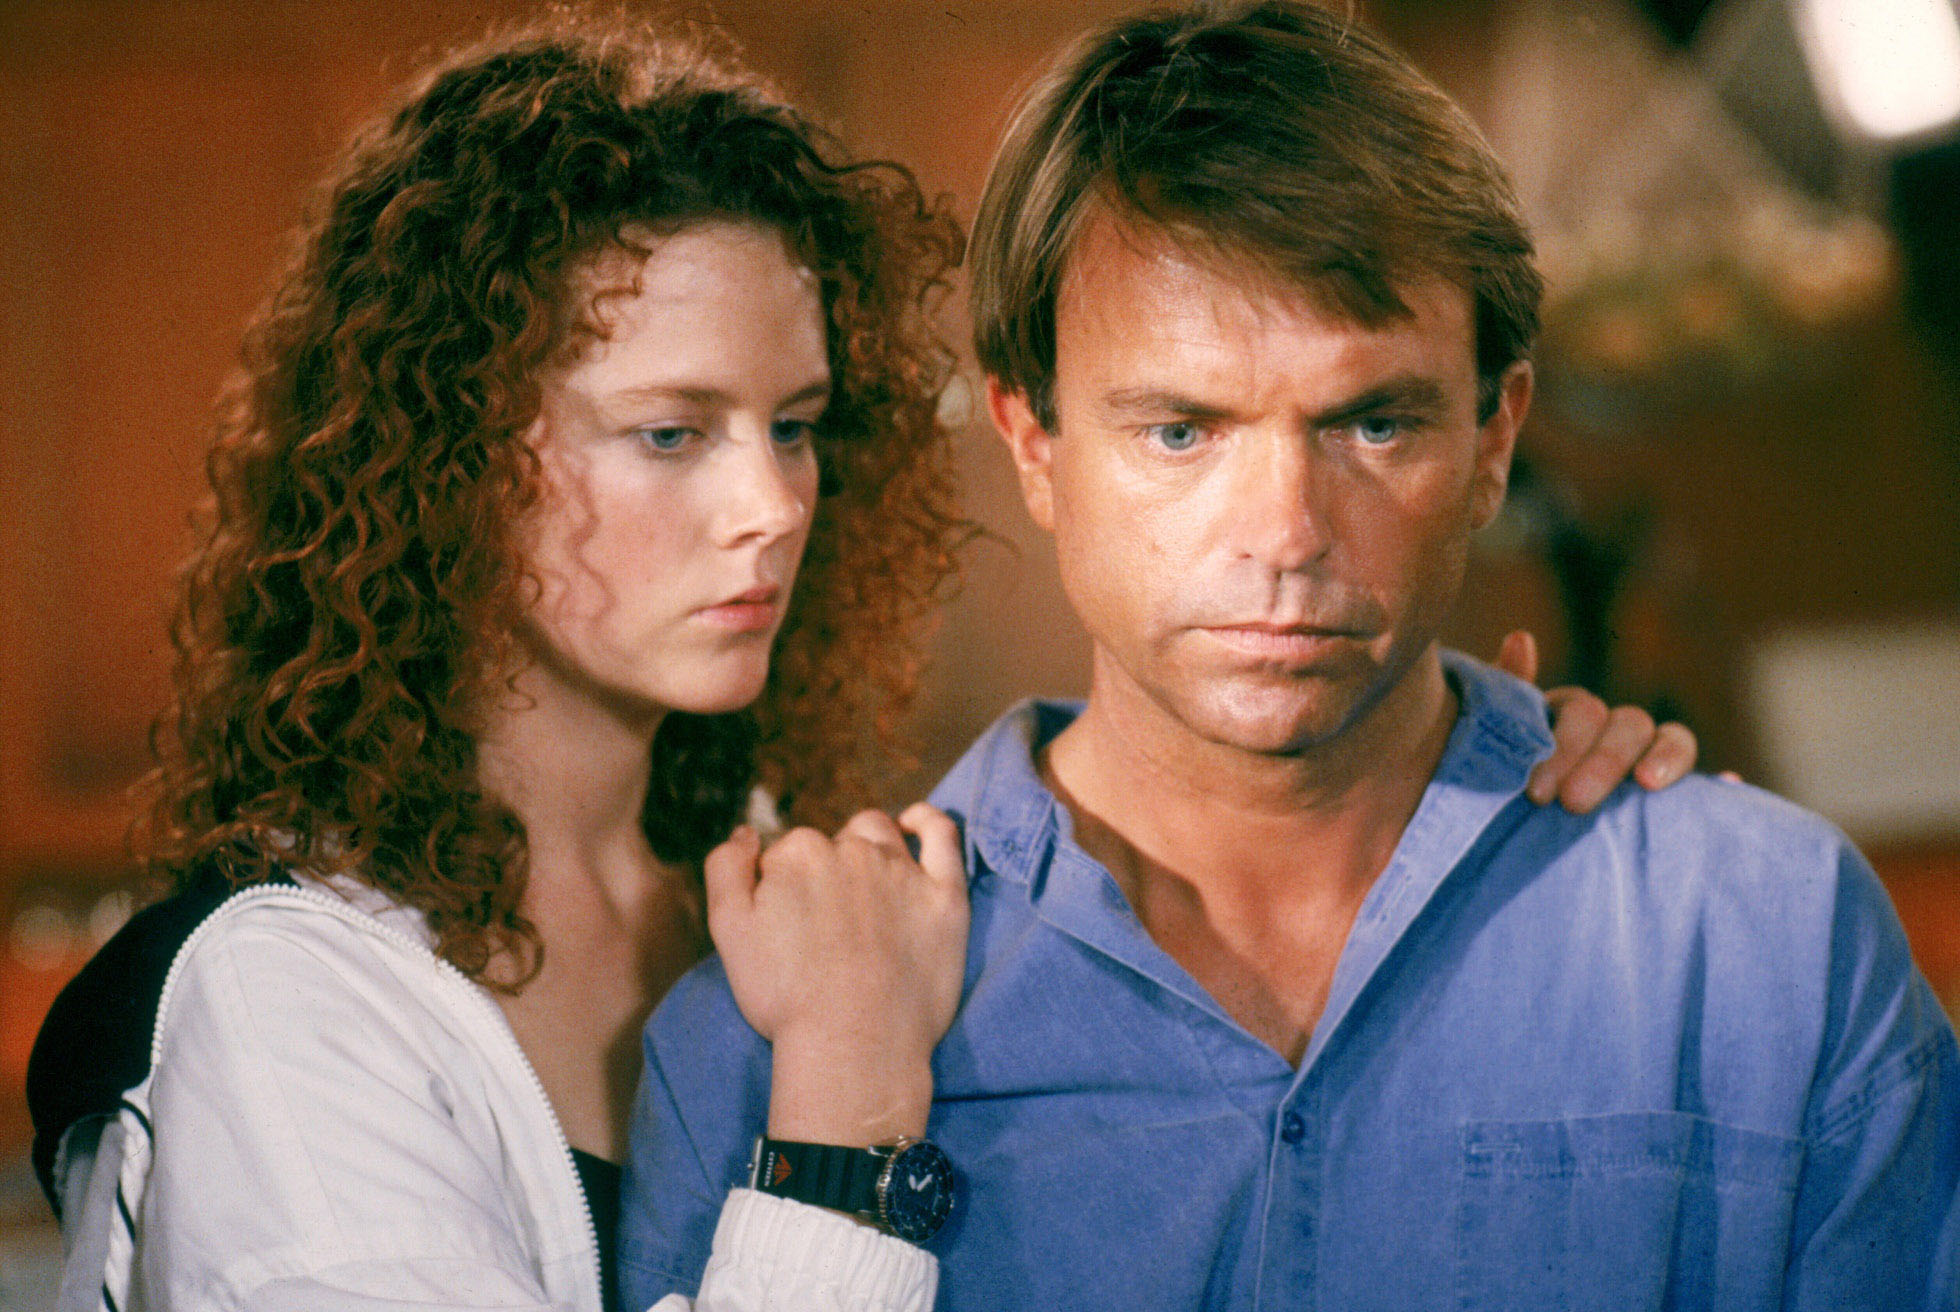 A 22 year-old Nicole Kidman (in her film debut) and husband Sam Neill in Dead Calm (1989)